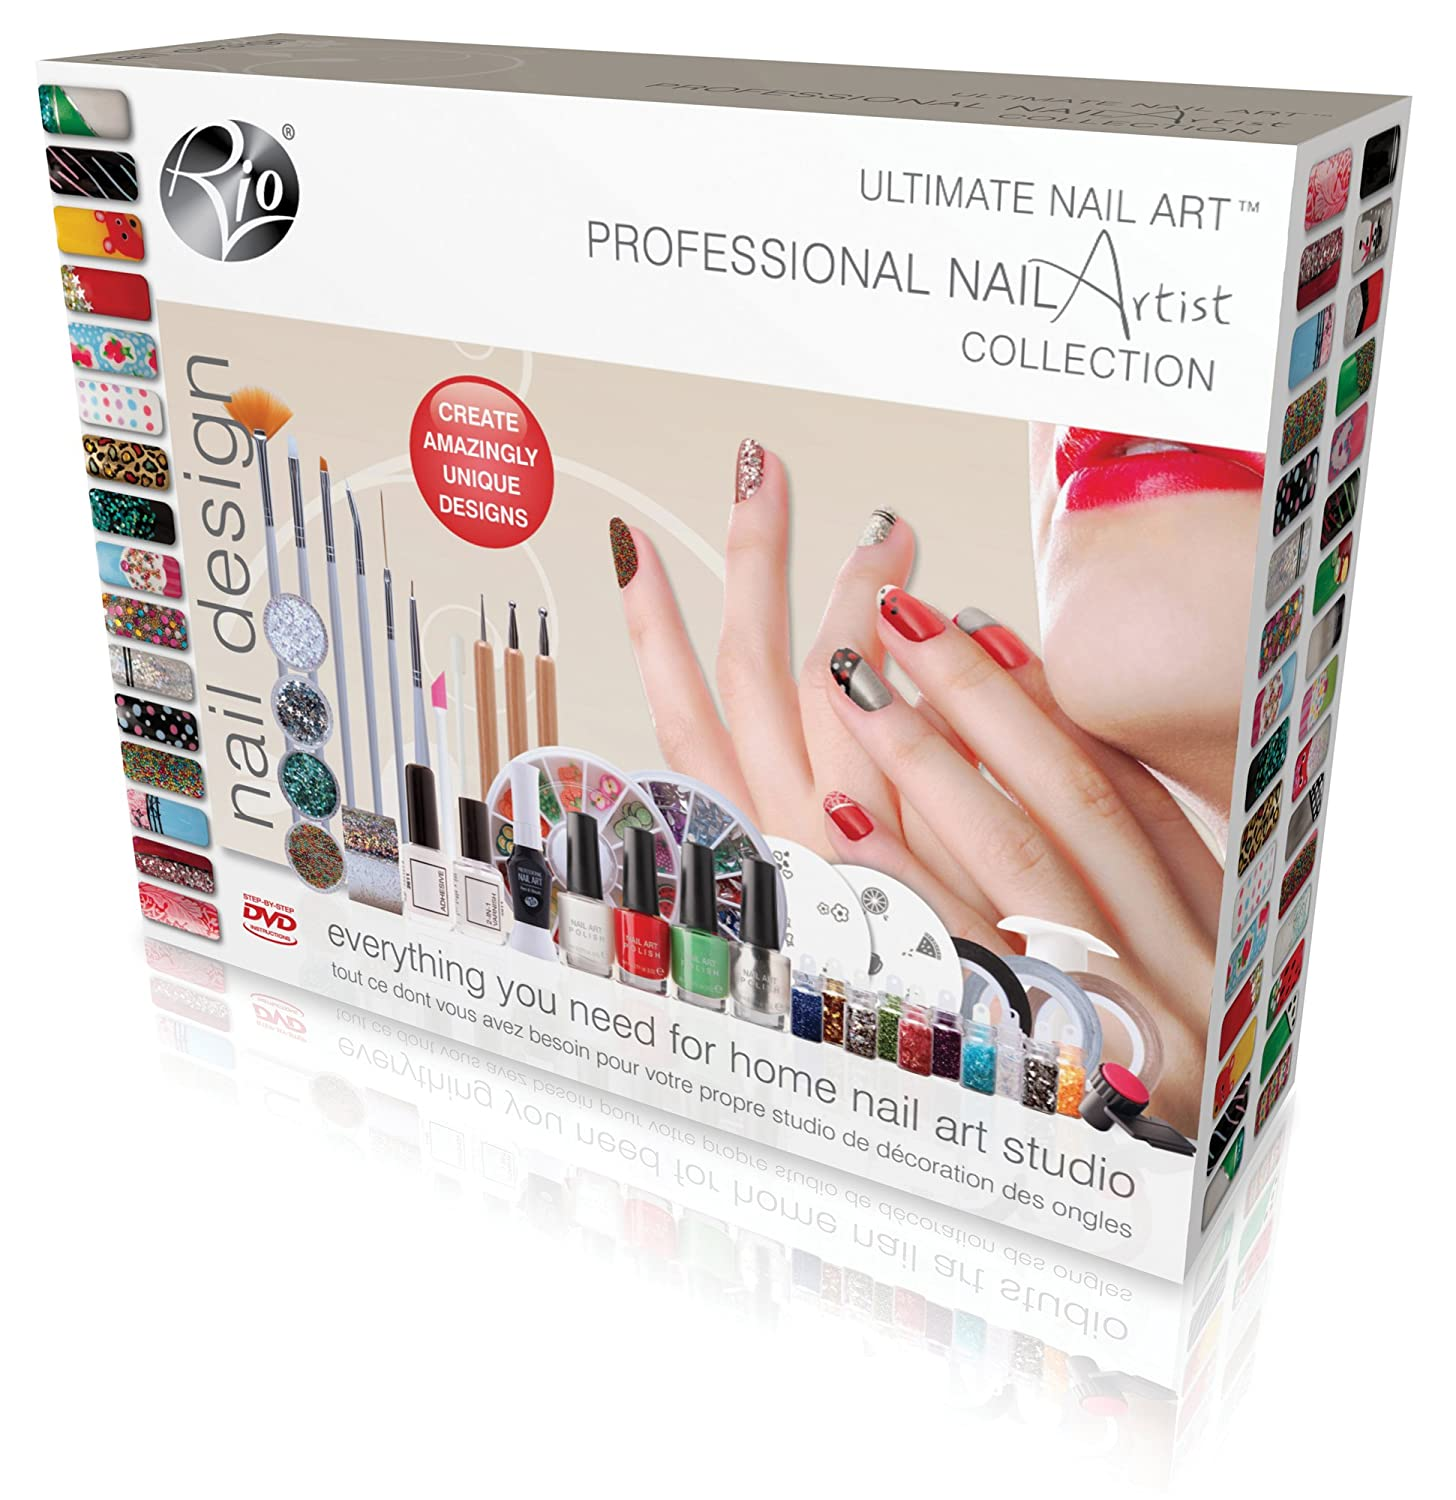 Rio Ultimate Nail Art Professional Artist Collection Amazon